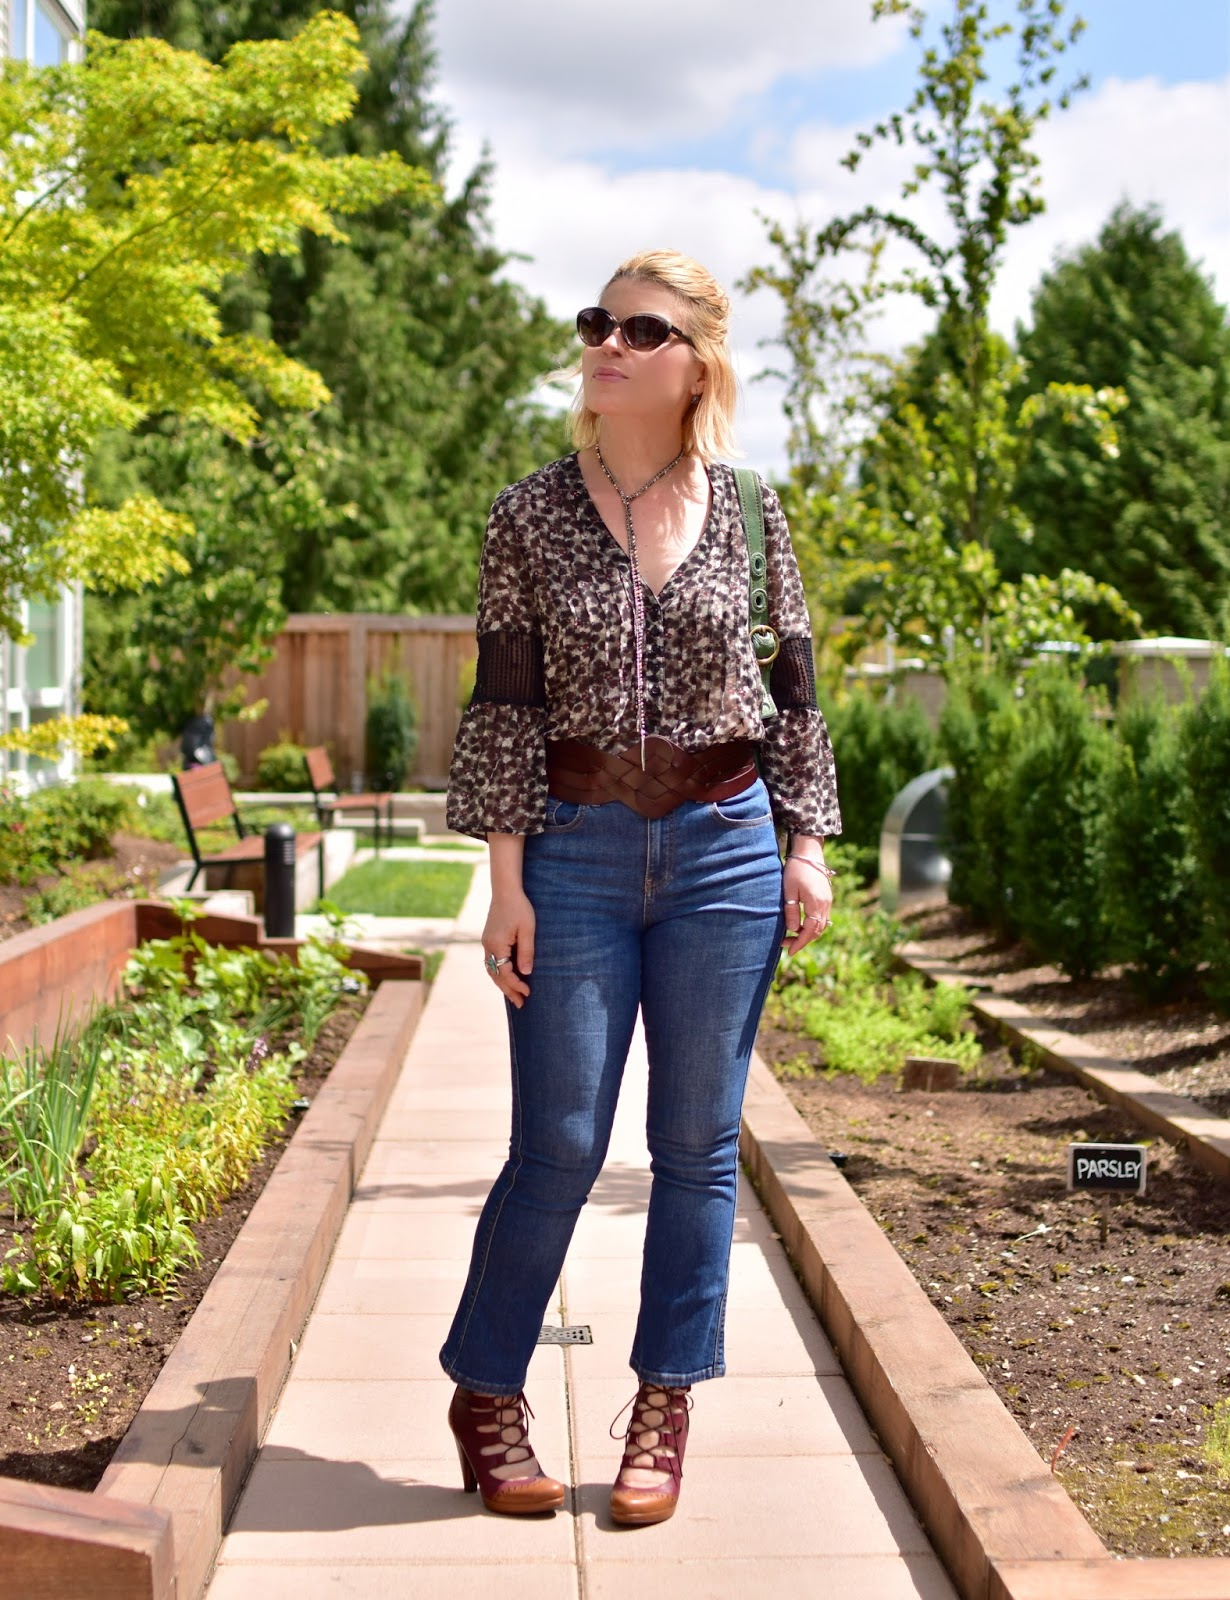 Monika Faulkner styles cropped flare jeans with a floral peasant blouse, lace-up heels, and a corset belt